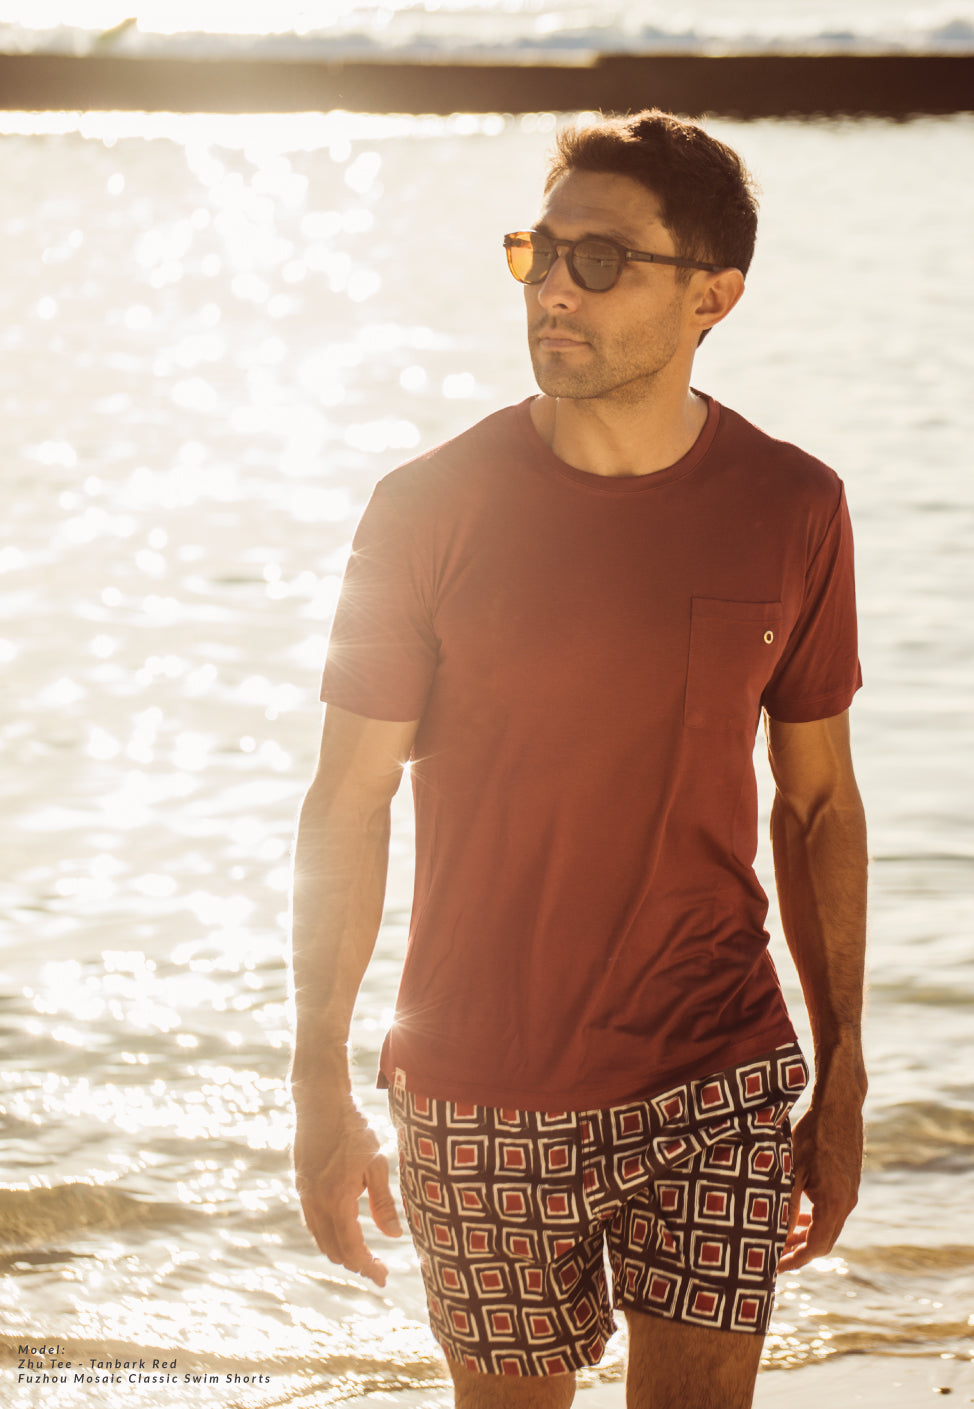 Tanbark Red Bamboo T-shirt with Fuzhou Mosaic classic swim shorts at sunset walking on the beach